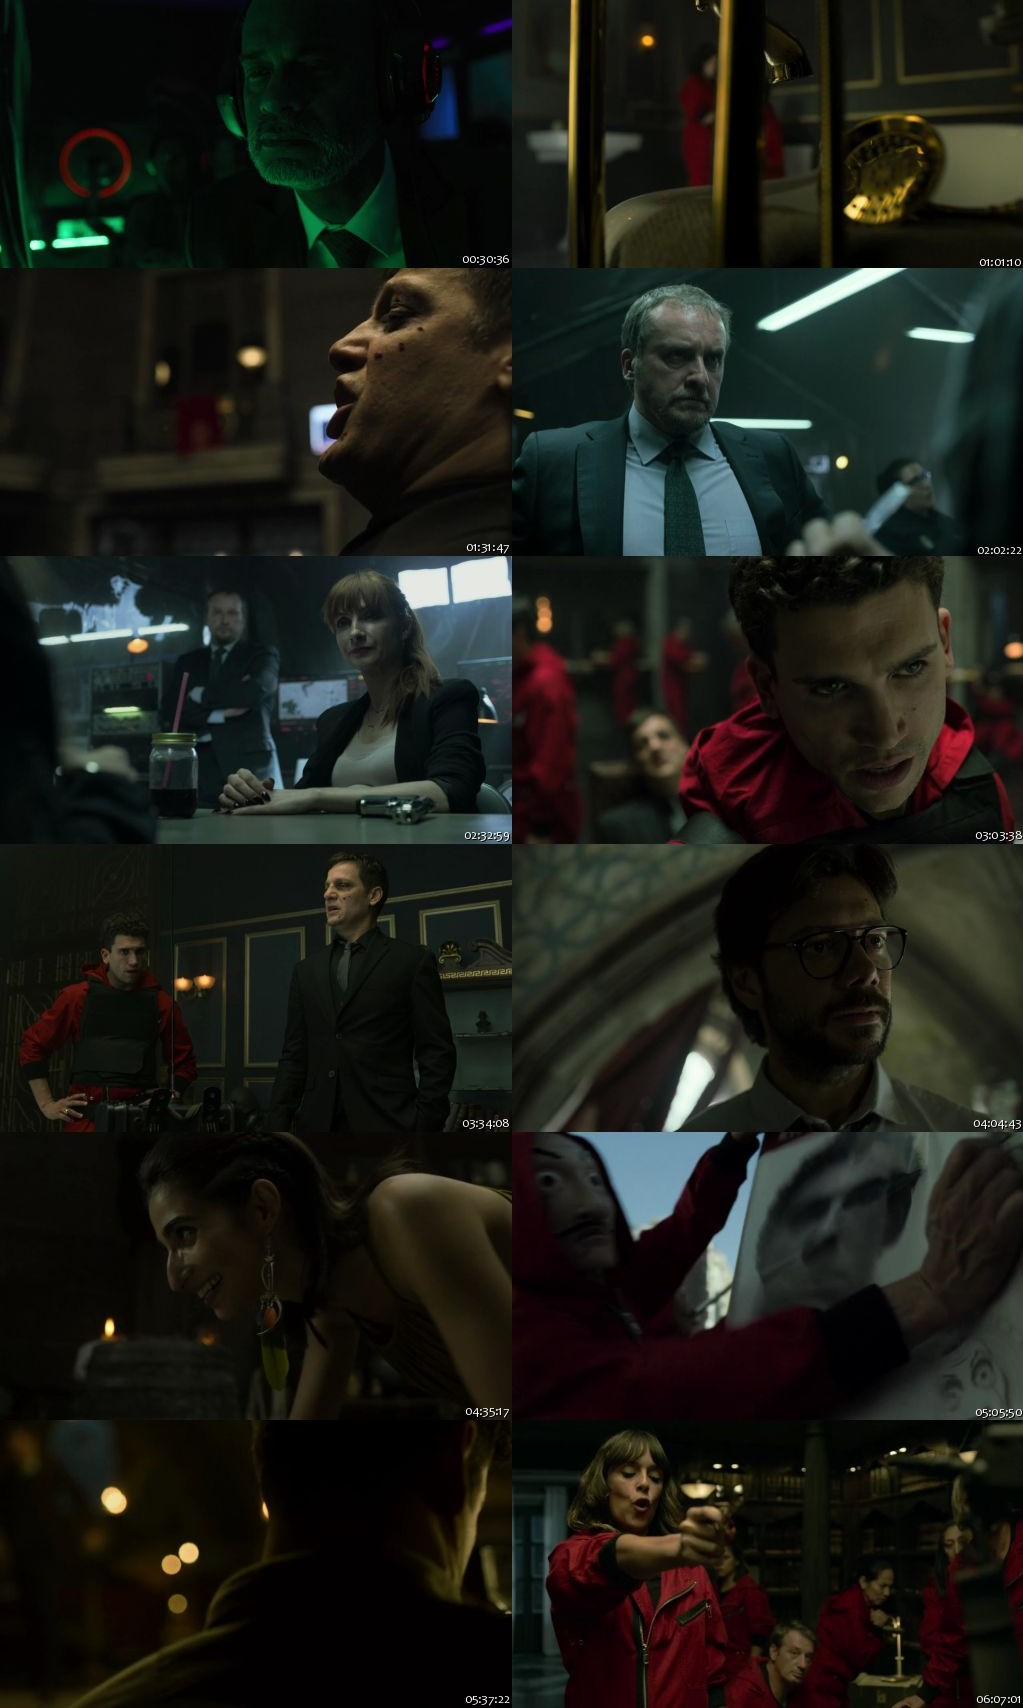 Money Heist 2017 (Season 4) All Episodes HDRip 720p